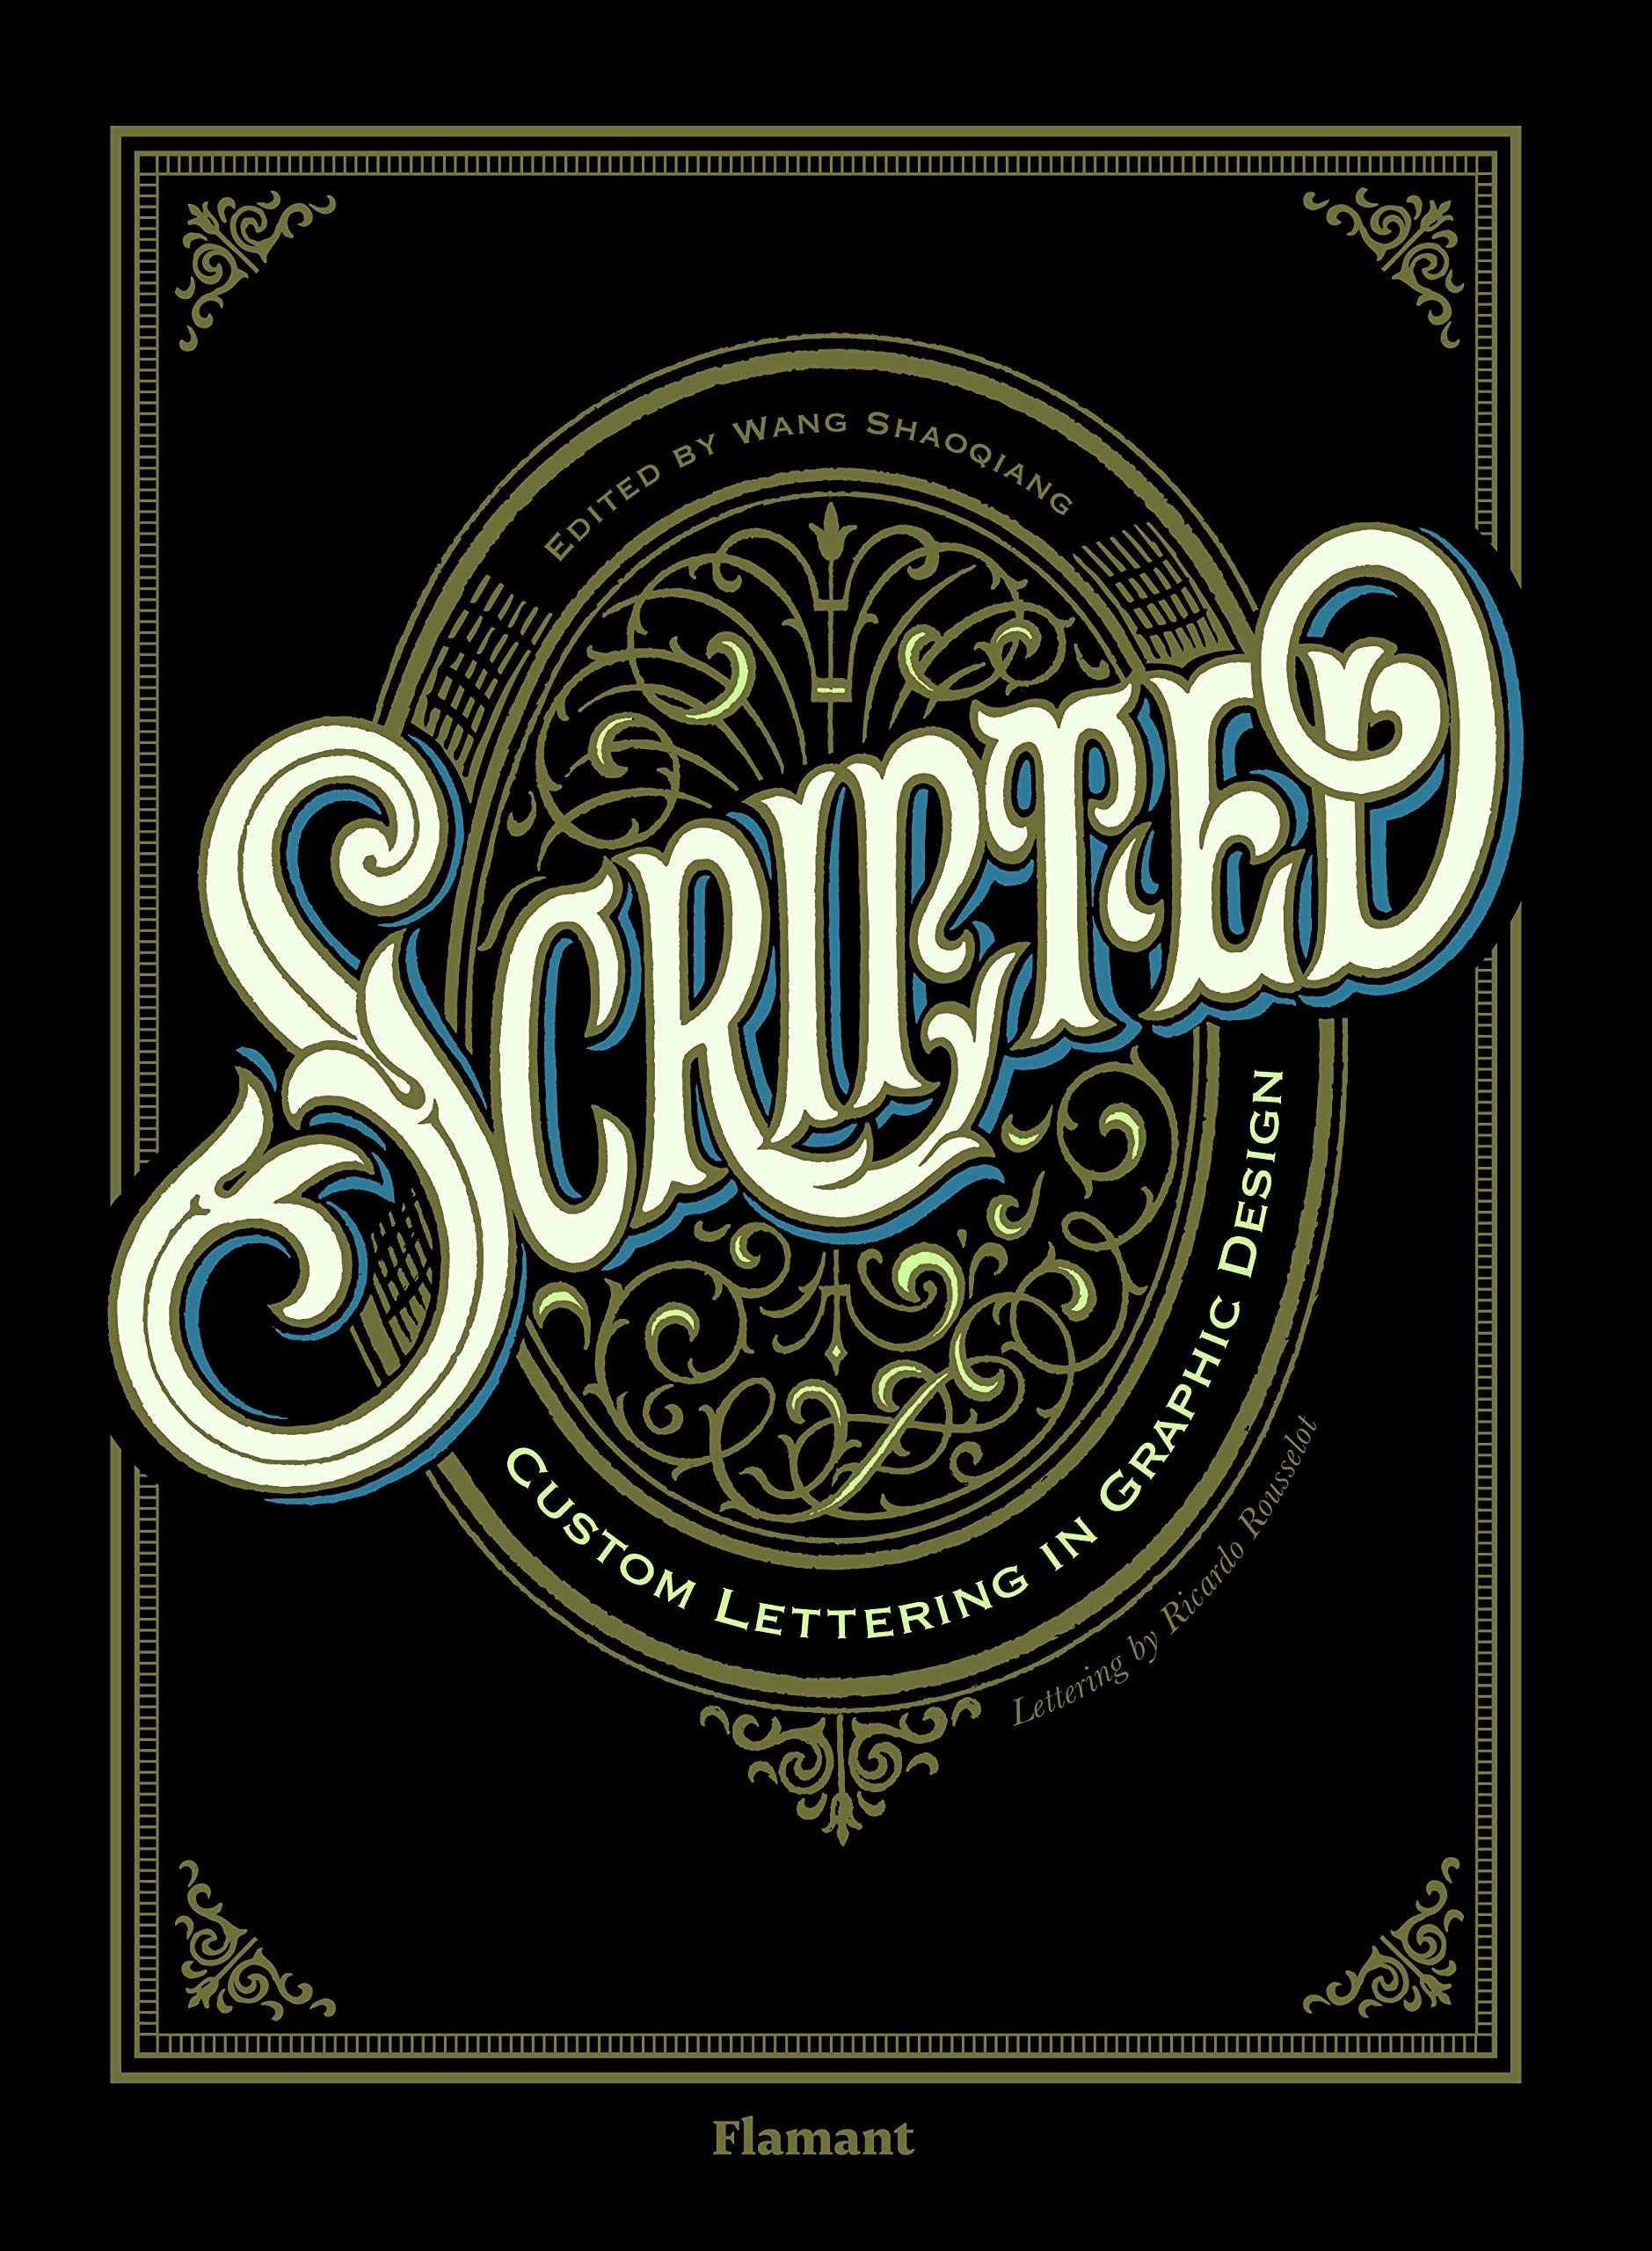 Scripted Custom Lettering In Graphic Design (Inglés) Tapa dura – 30 oct 2017 Shaoqiang Wang Promopress 8417084029 Graphic Arts - Typography